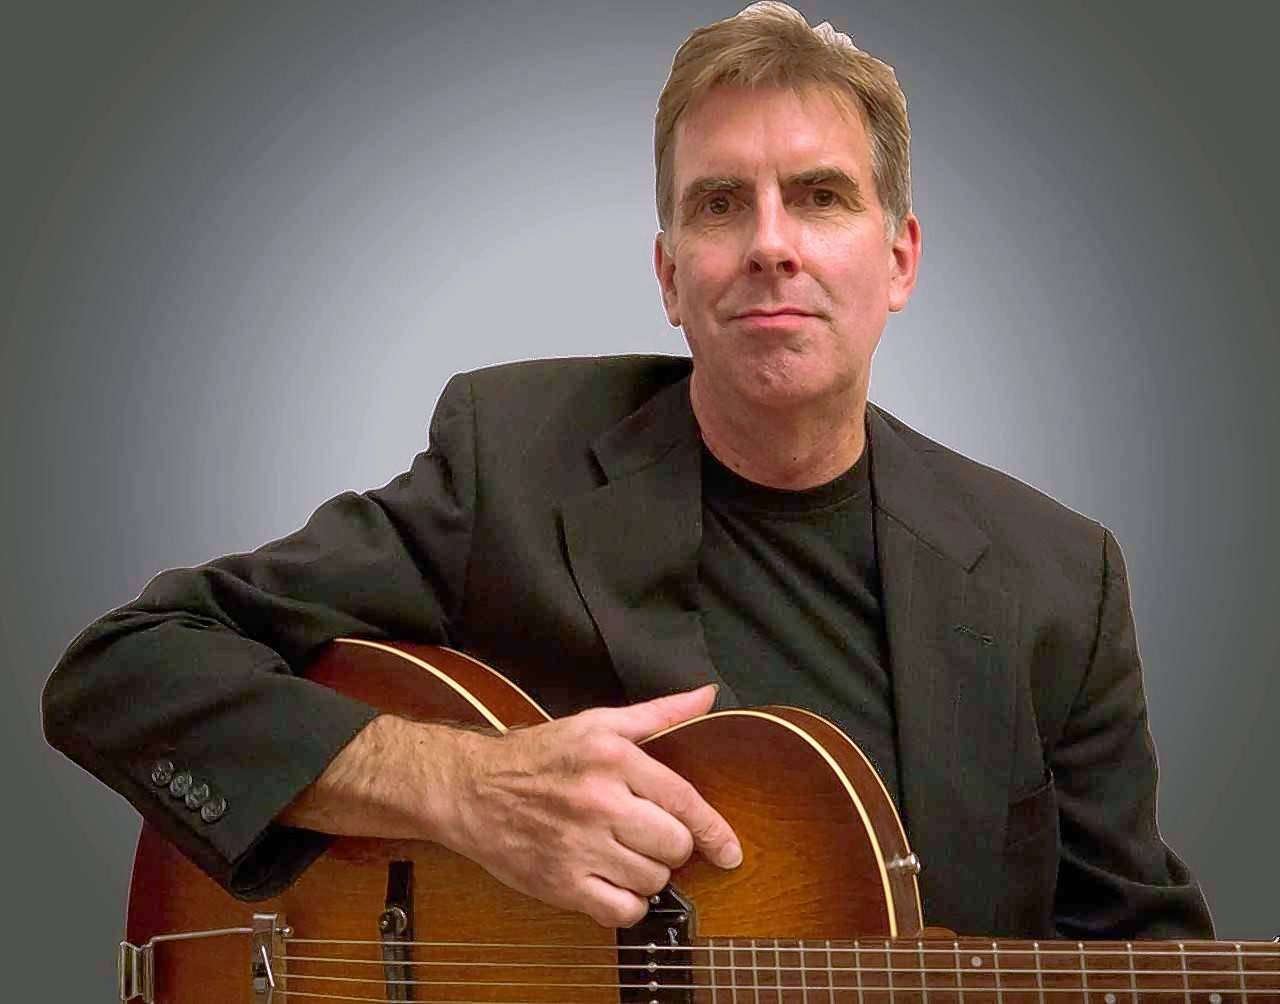 David Onderdonk, a professional guitarist, has toured and recorded with Fred Simon, Marlene Rosenberg, Fareed Haque, Kurt Elling, Terry Callier and others. He will perform and lead a workshop at Oakton's Guitar Festival.